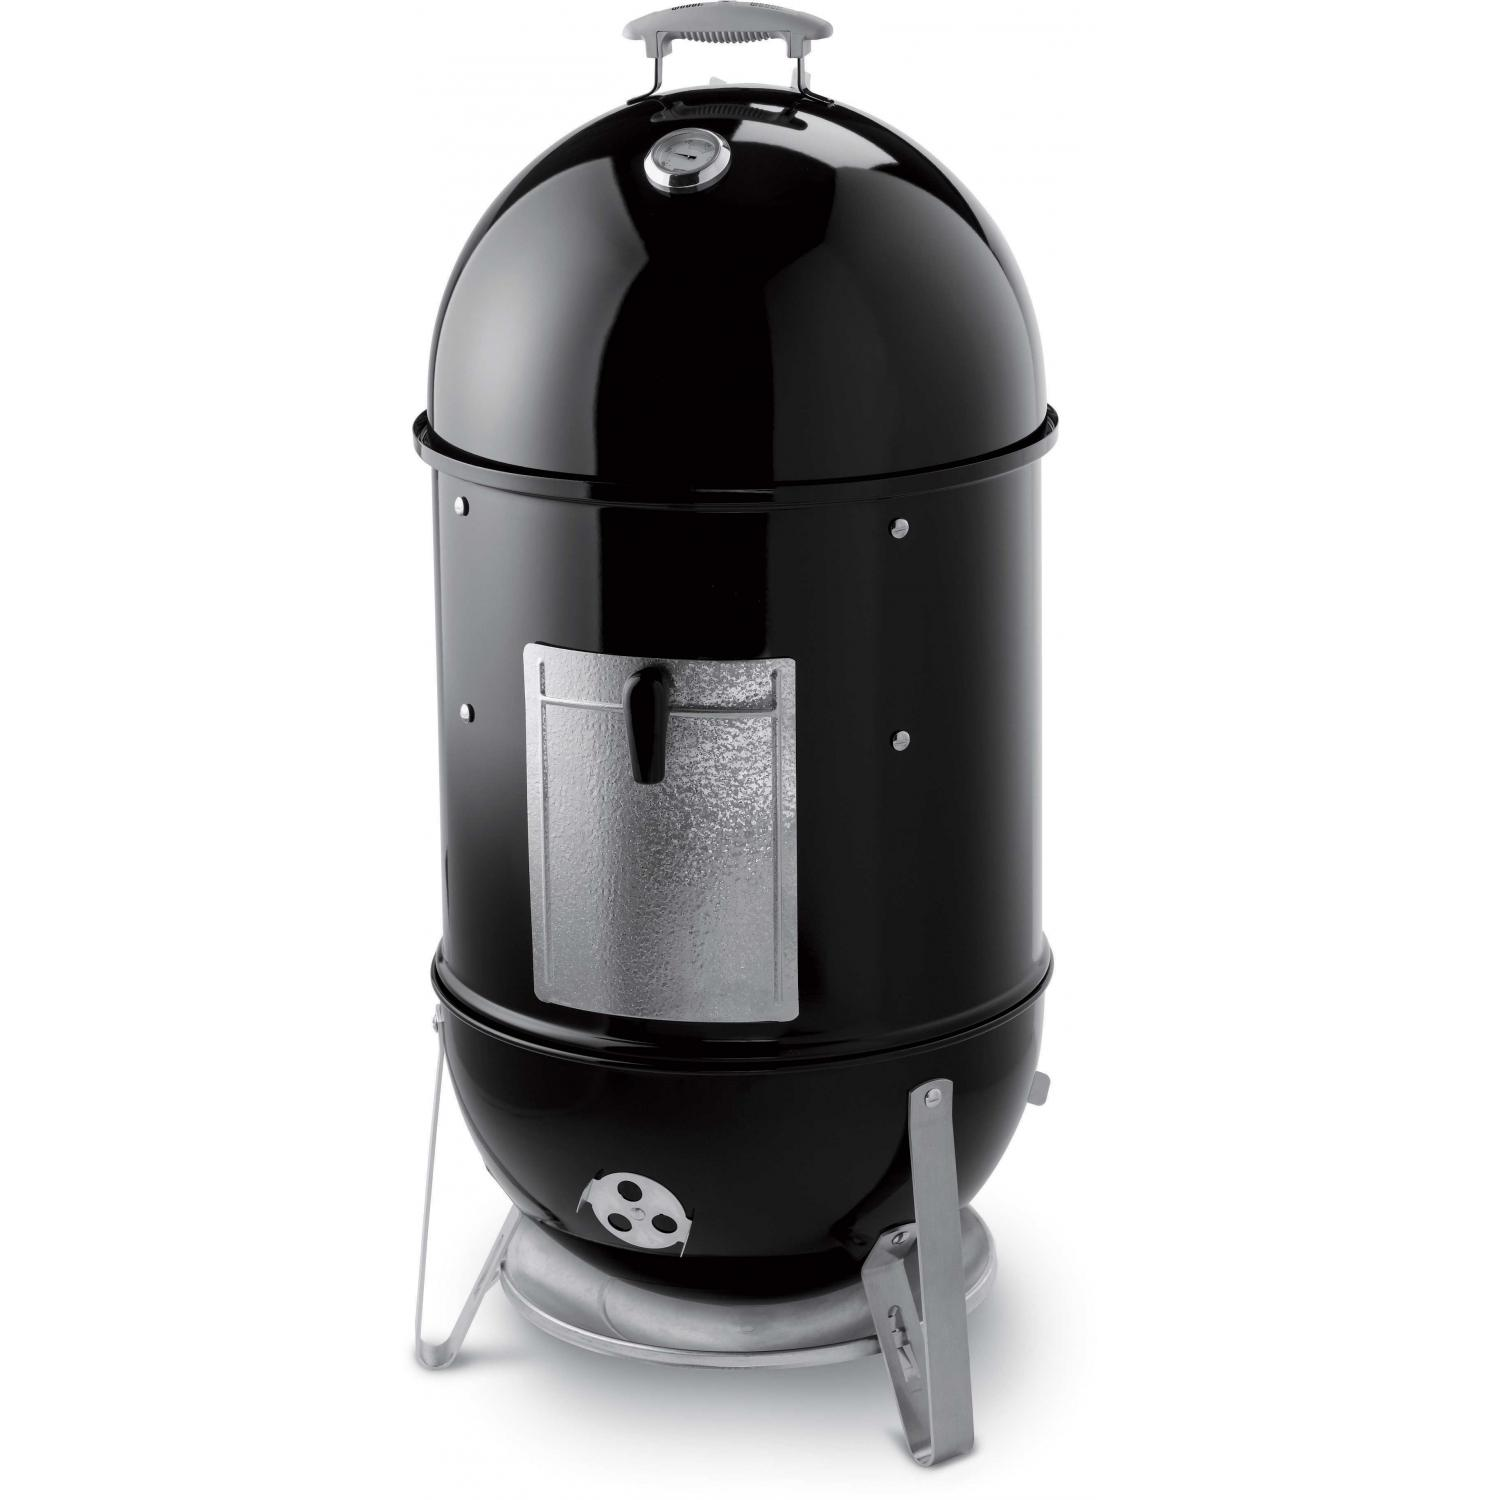 Weber 18.5 Inch Smokey Mountain Cooker Charcoal Smoker